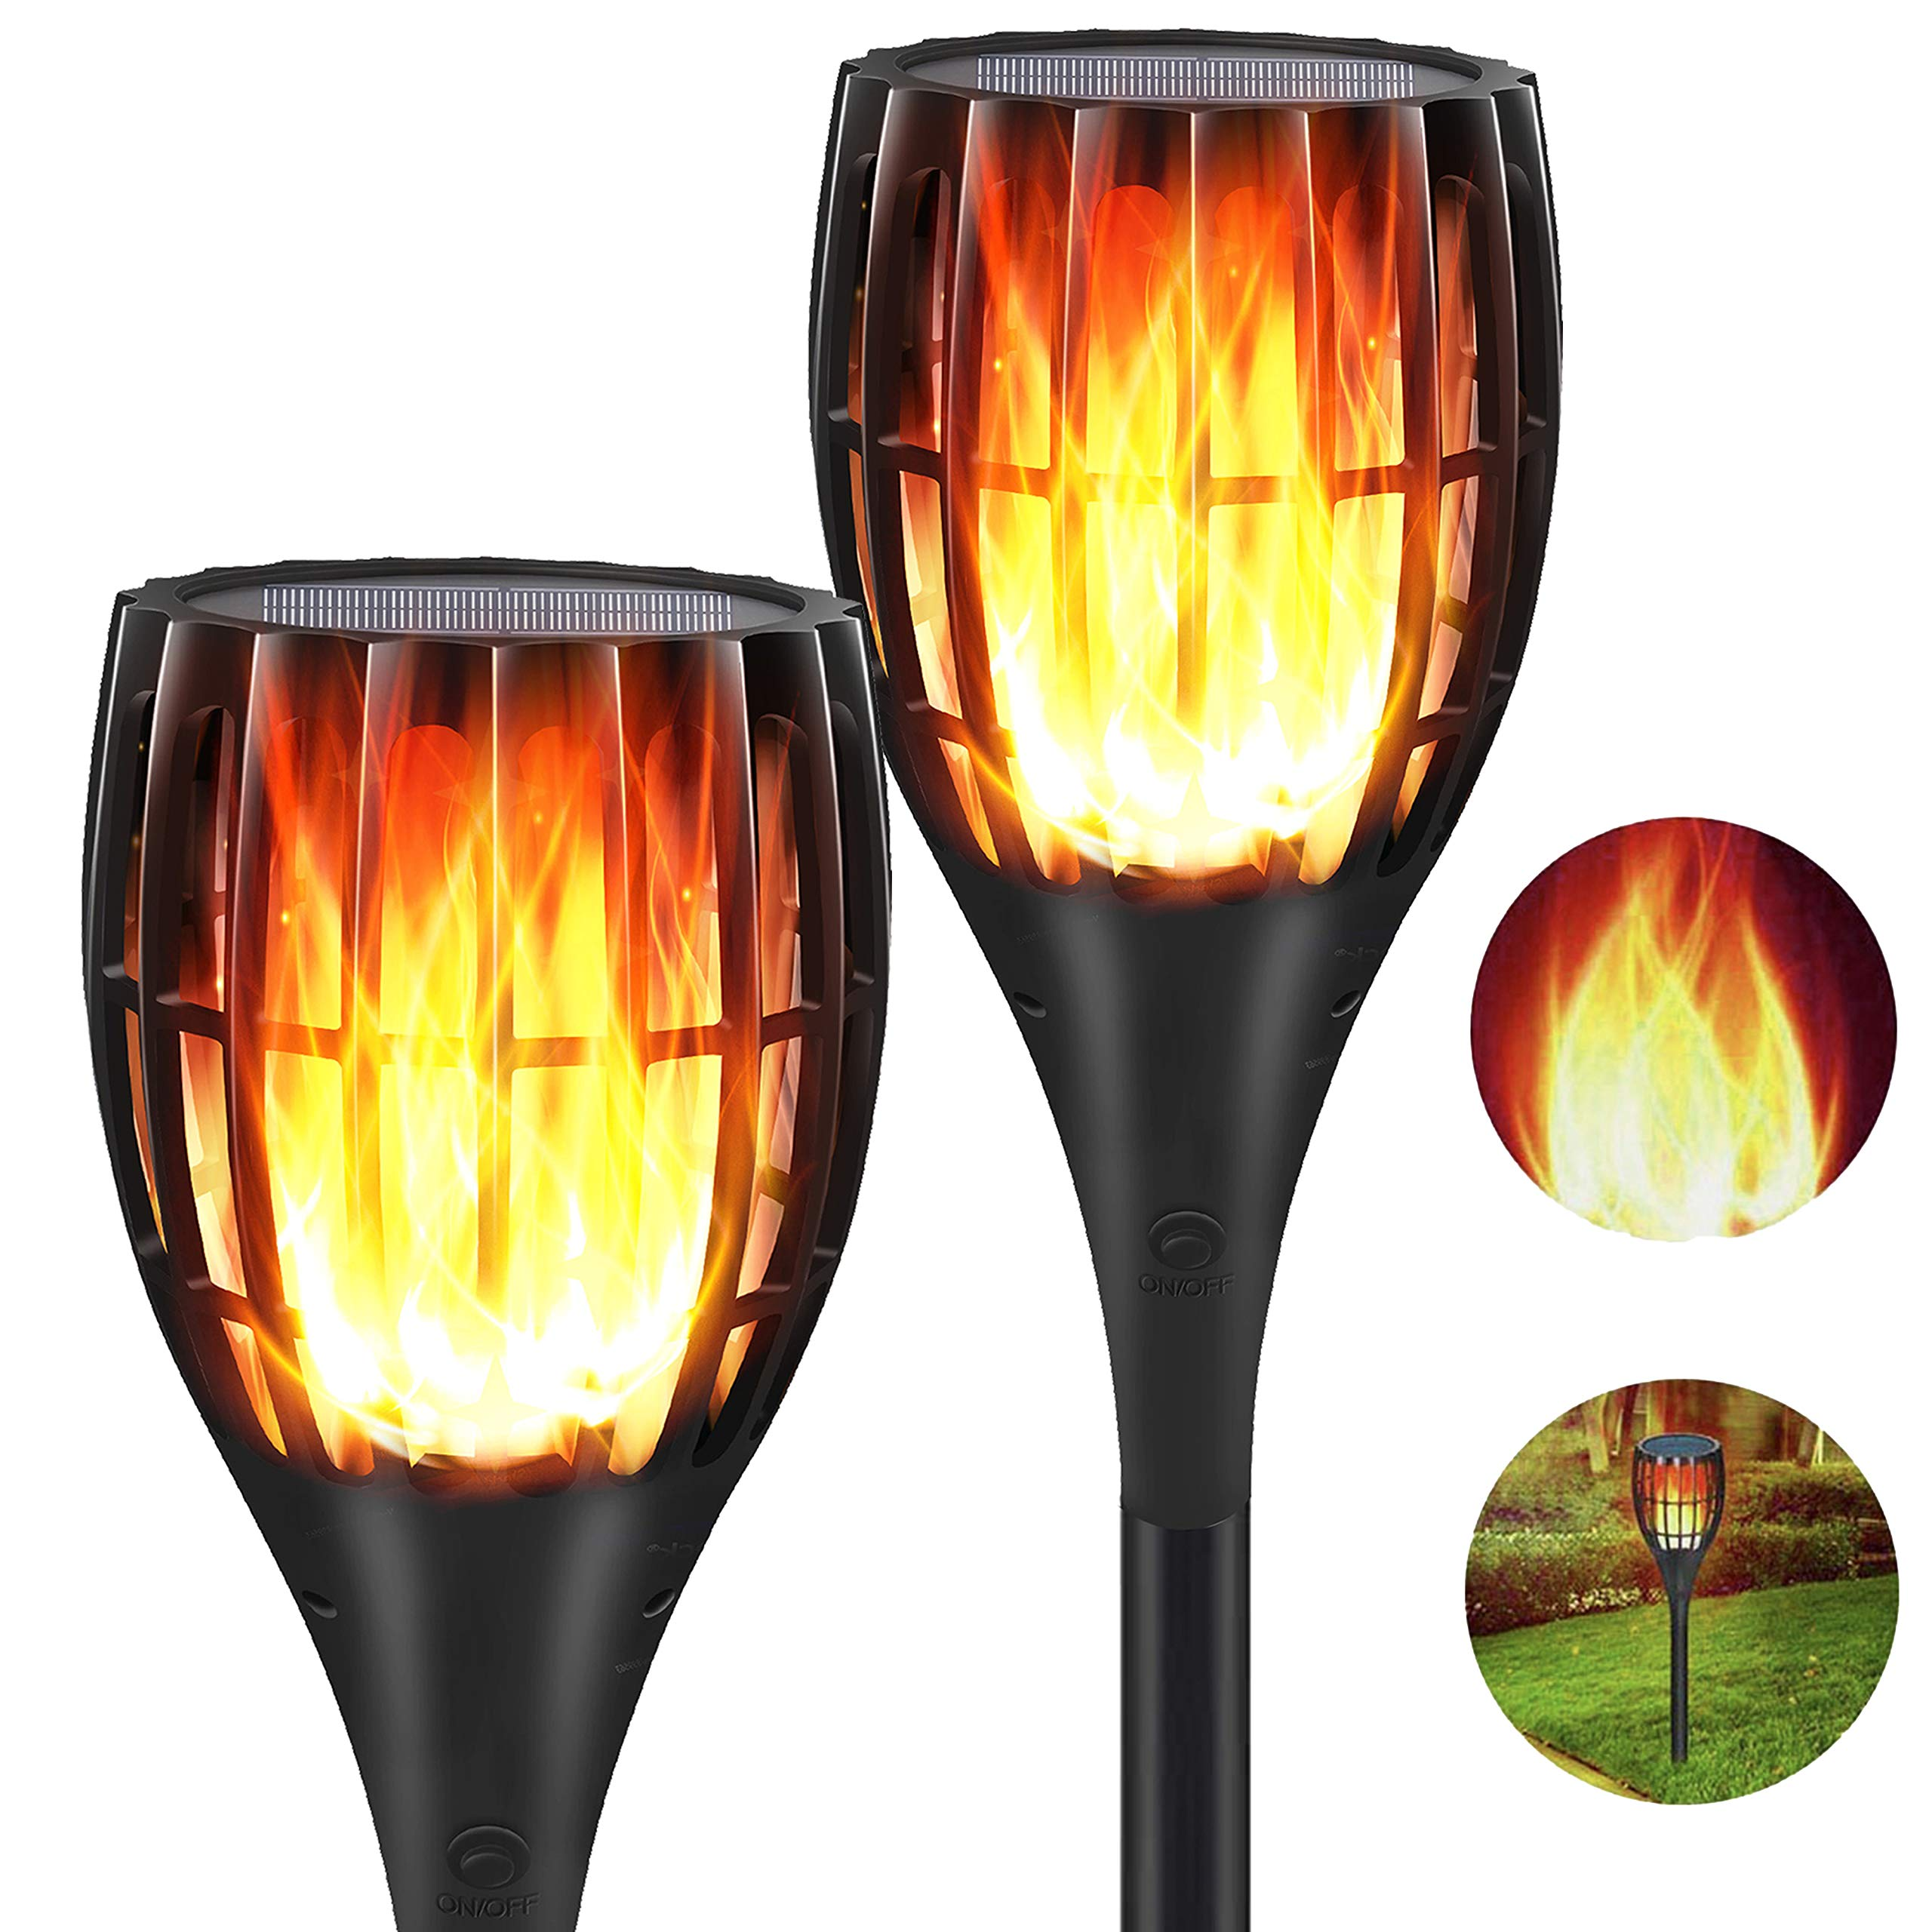 YUJENY Solar Flame Torch Lights Upgraded, Waterproof Dance Flame Lighting Solar Garden Light Outdoor Landscape Decoration Lighting Dusk to Dawn Auto On/Off (2 Pack) by YUJENY